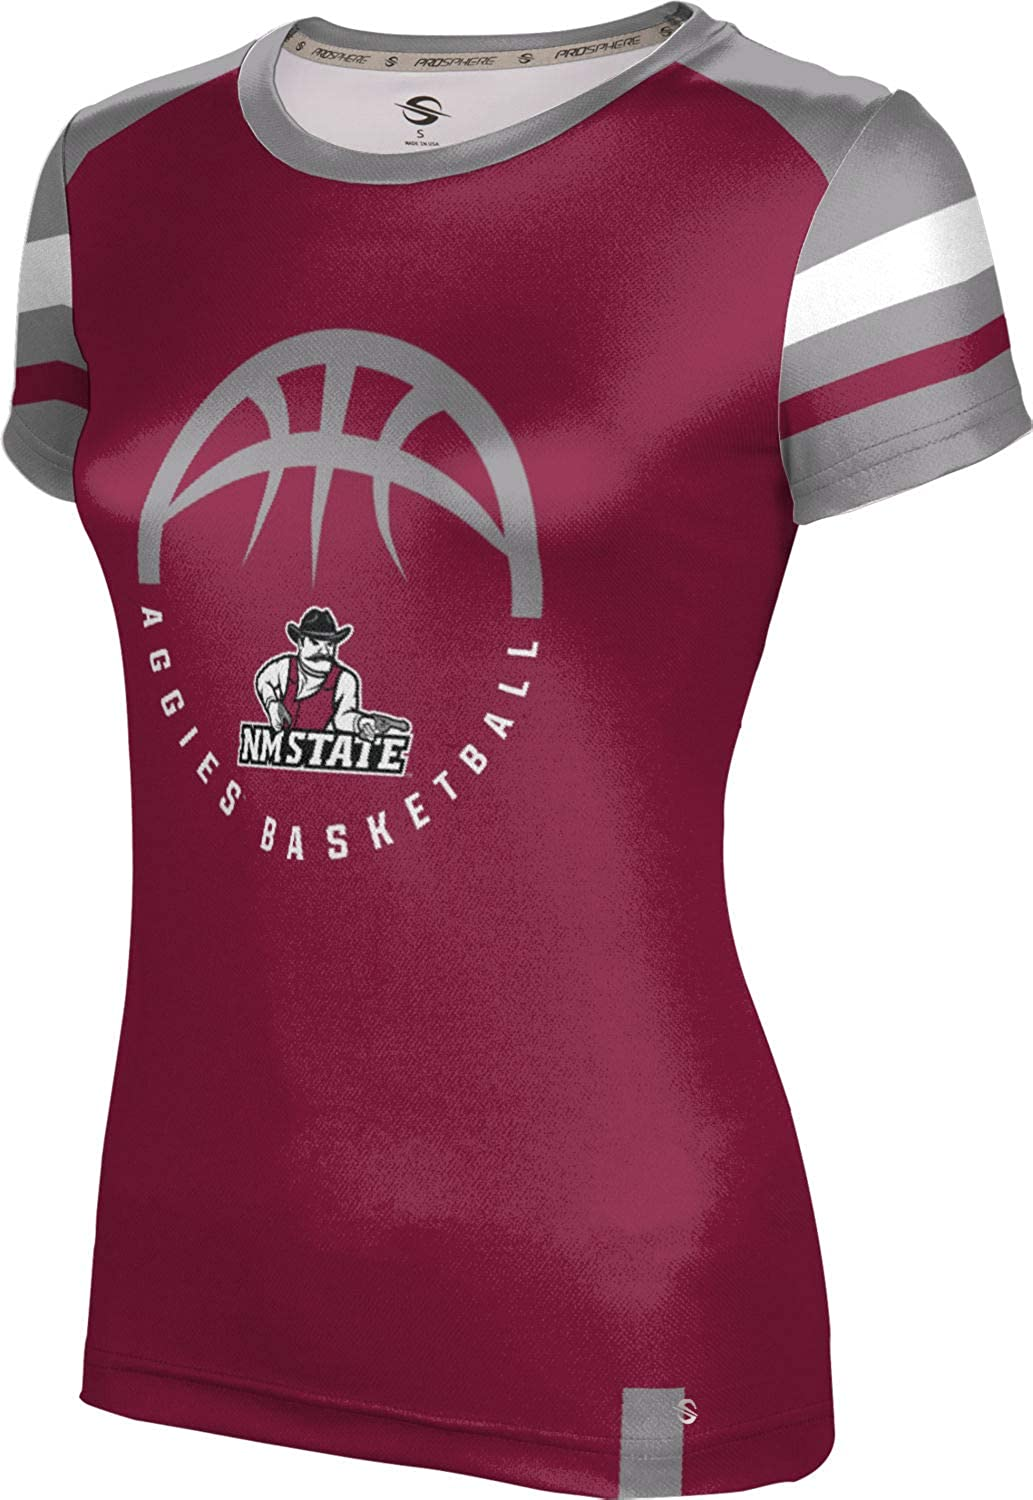 ProSphere New Mexico State University Basketball Girls Performance T-Shirt Old School